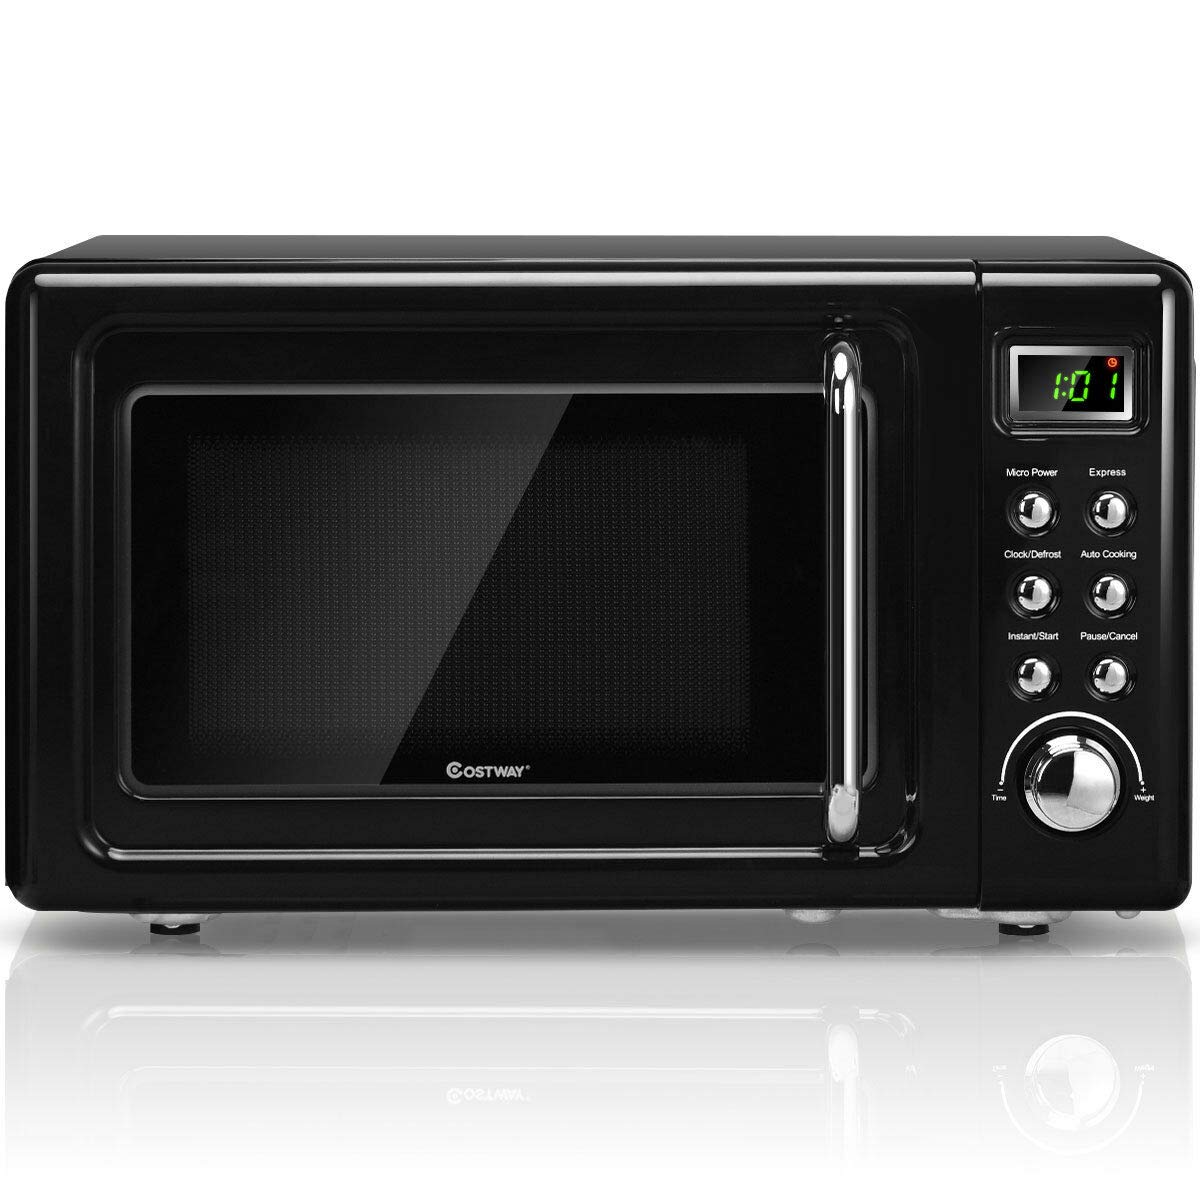 Costway Retro Countertop Microwave Oven, 0.7Cu.ft, 700-Watt, Cold Rolled Steel Plate, 5 Micro Power, Defrost & Auto Cooking Function, Delayed Start Function, with Glass Turntable & Viewing Window, LED Display, Child Lock (Black)